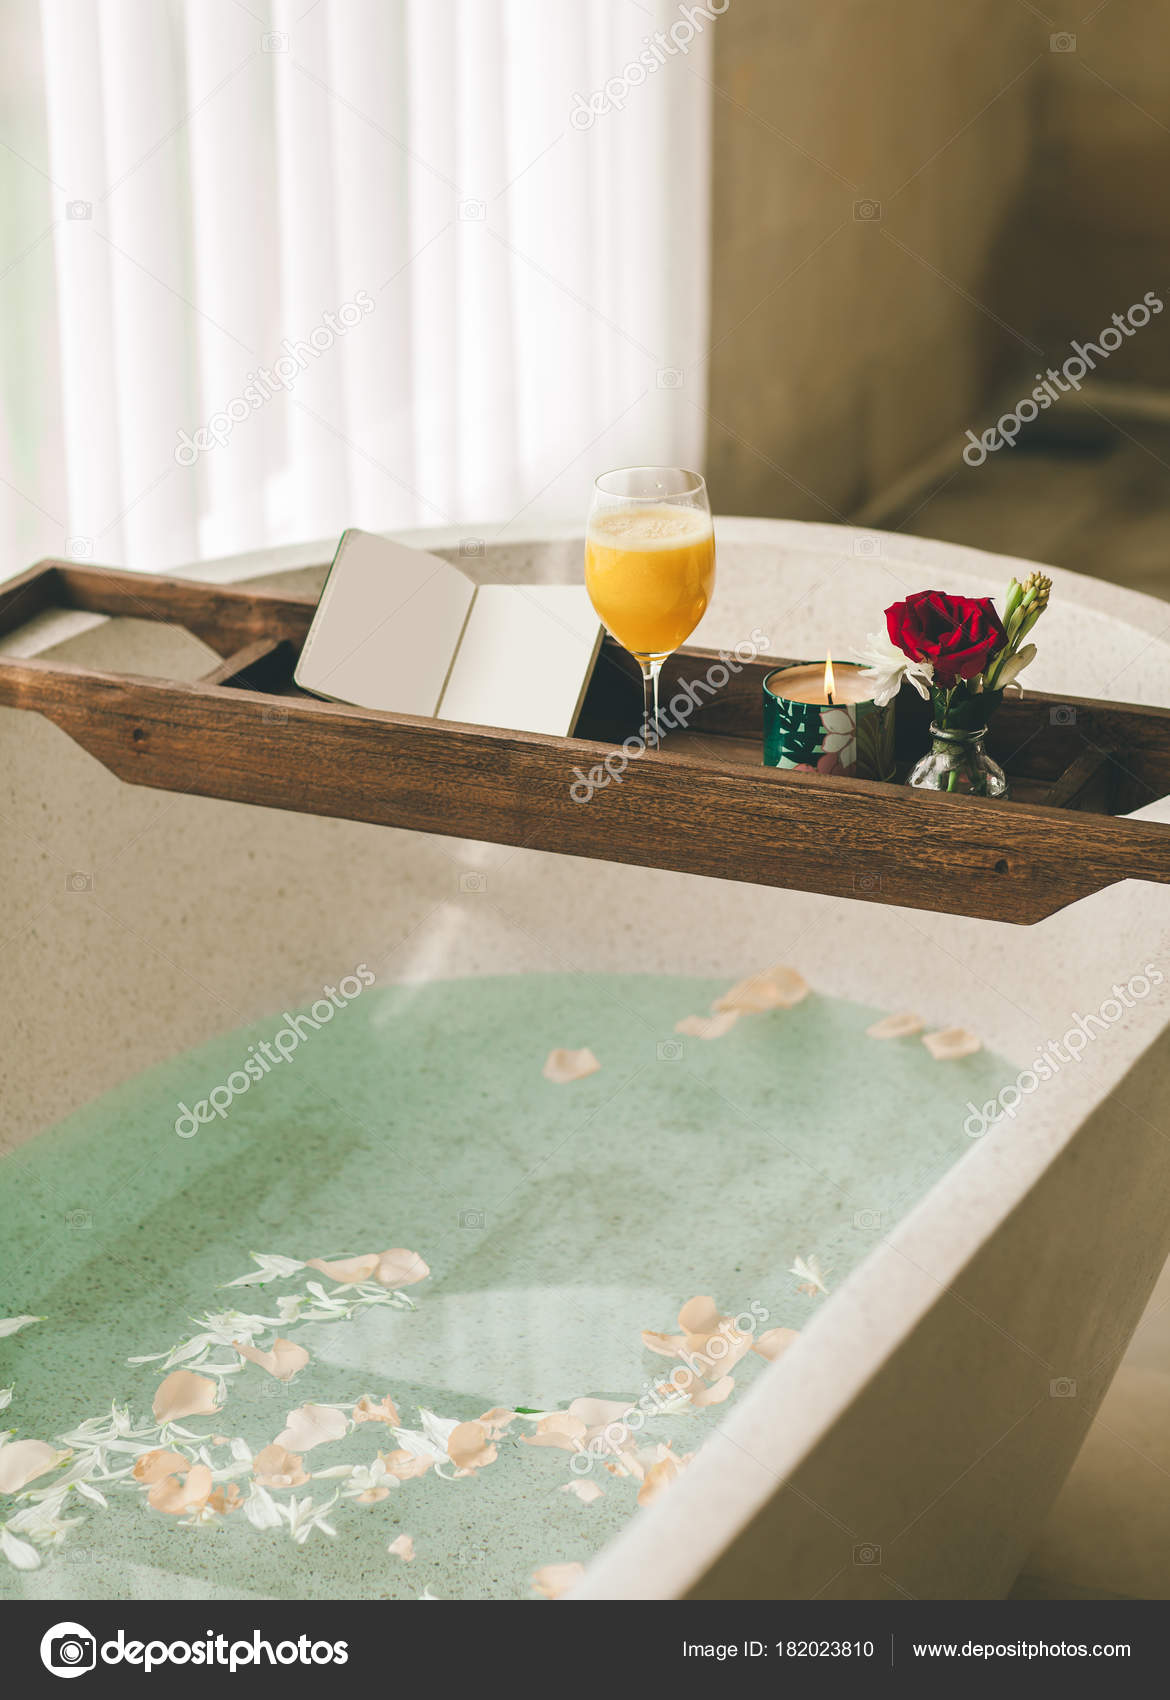 Bright Bathroom Home Bath Flower Petals Salt Tray Bath Orange ...